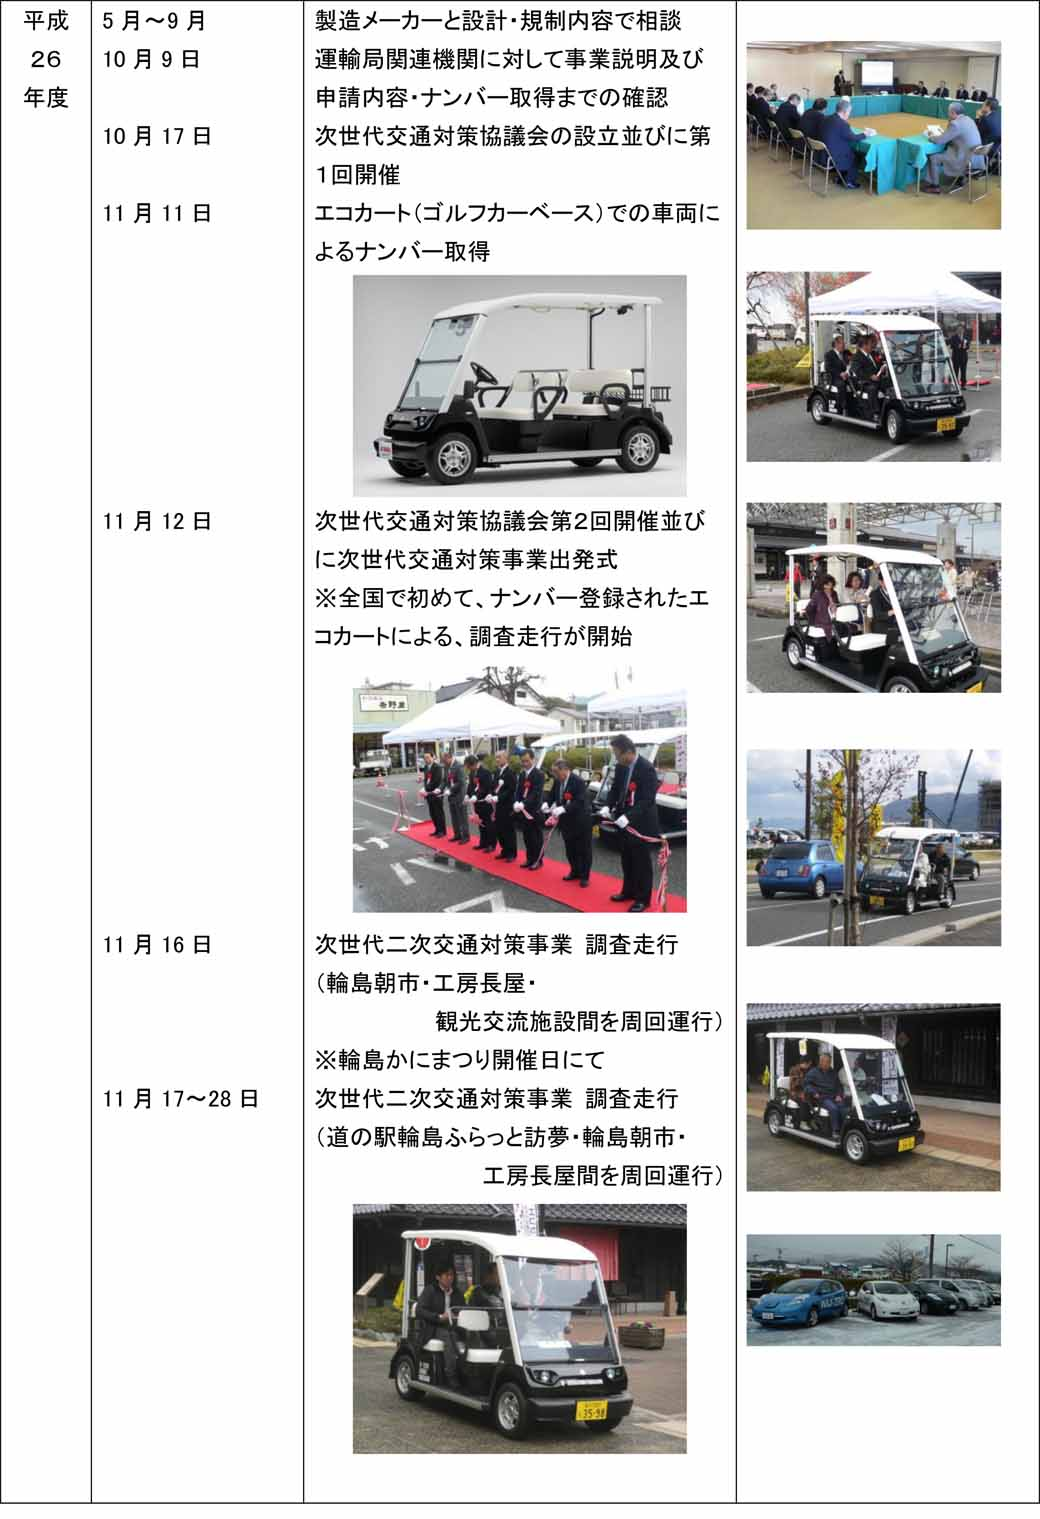 run-ishikawa-prefecture-wajima-local-revitalization-measures-by-the-eco-cart-is-good-eventually-also-view-automatic-operation20160708-4